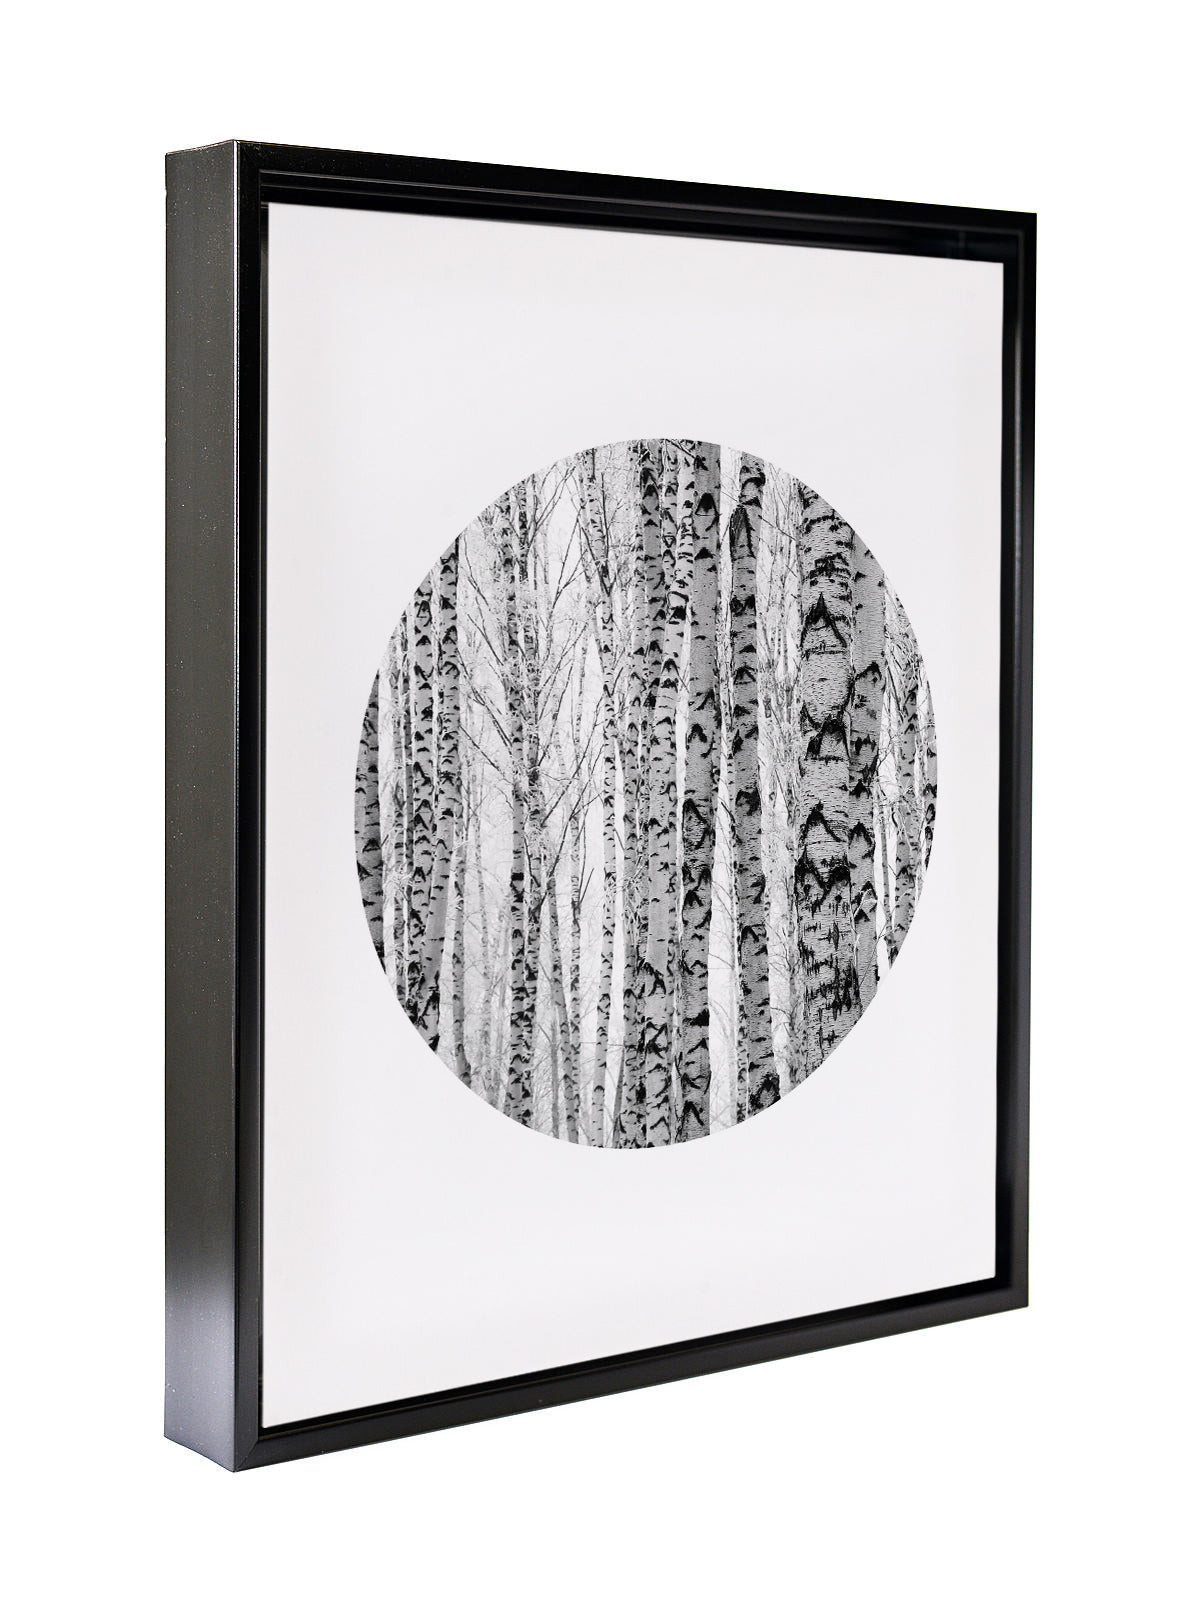 TREE CIRCLE Premium Framed Gallery Wrap By Honeytree Prints